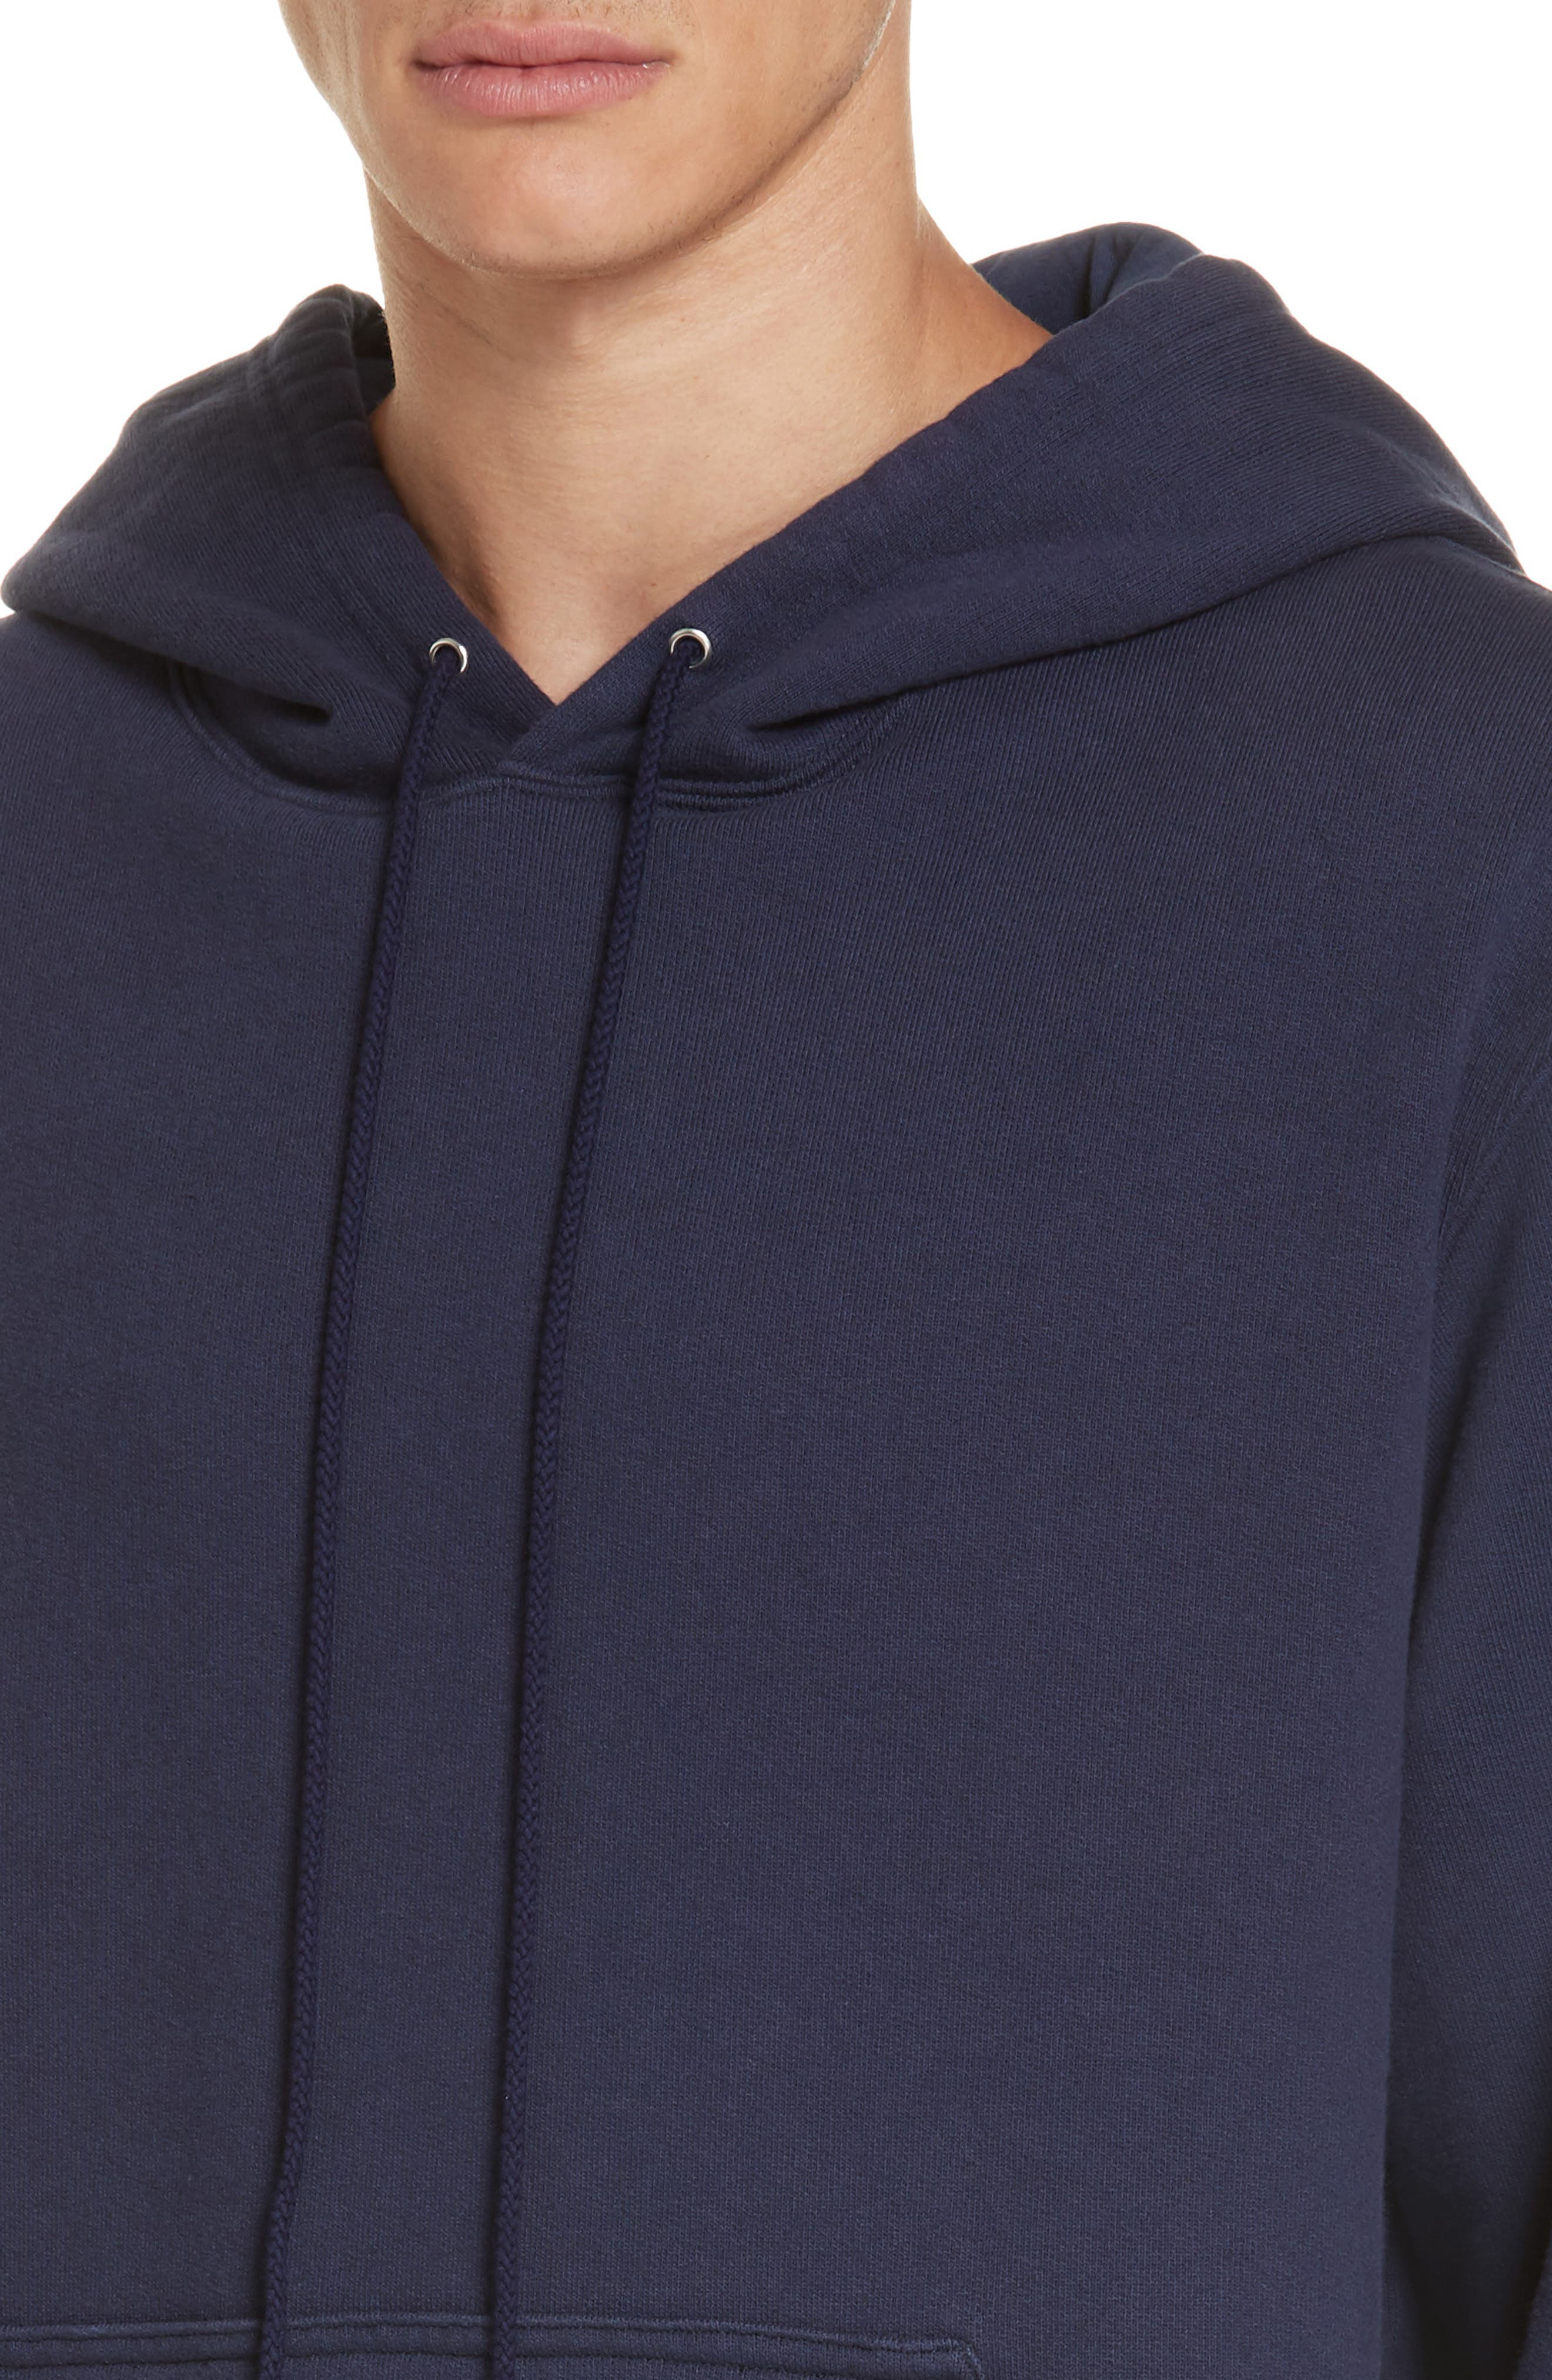 Oversize Hoodie,                             Alternate thumbnail 4, color,                             MARINE